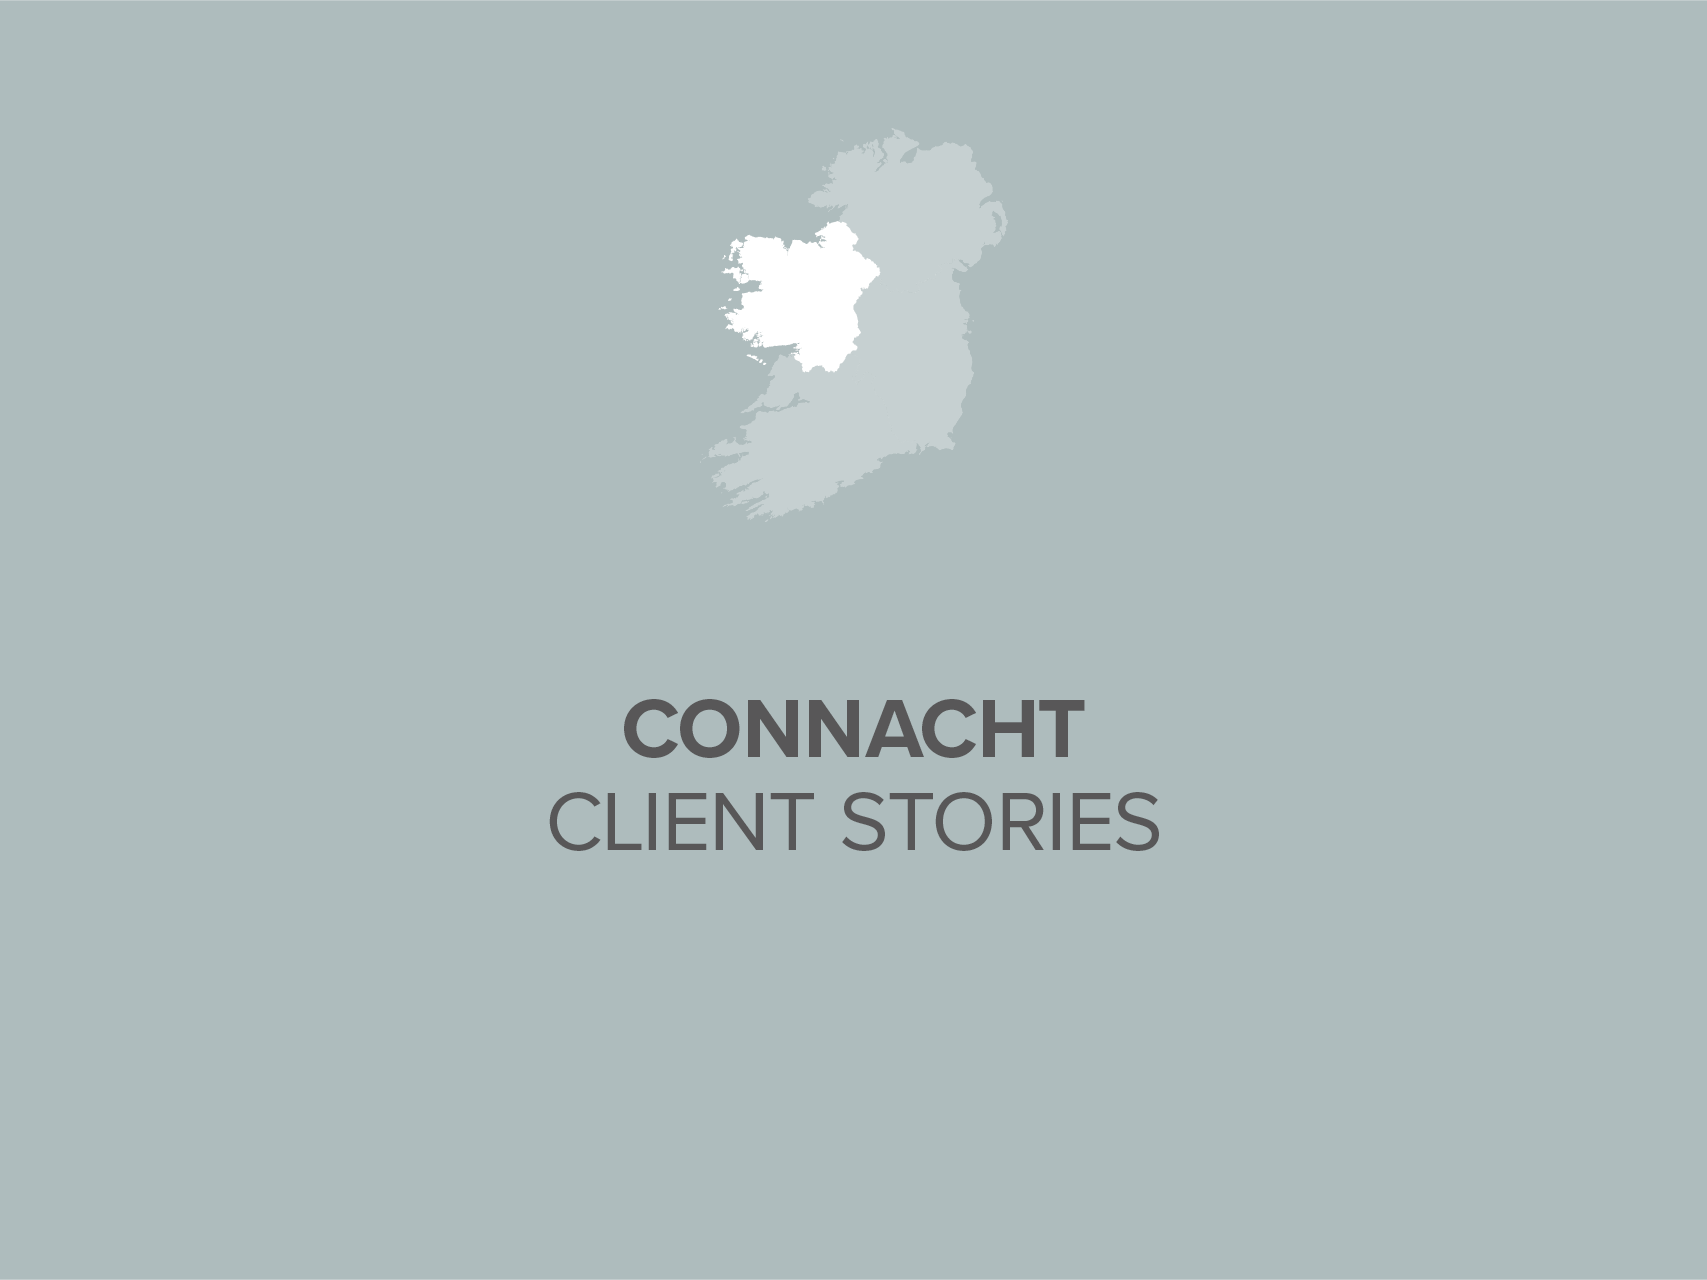 Connaught Client Stories